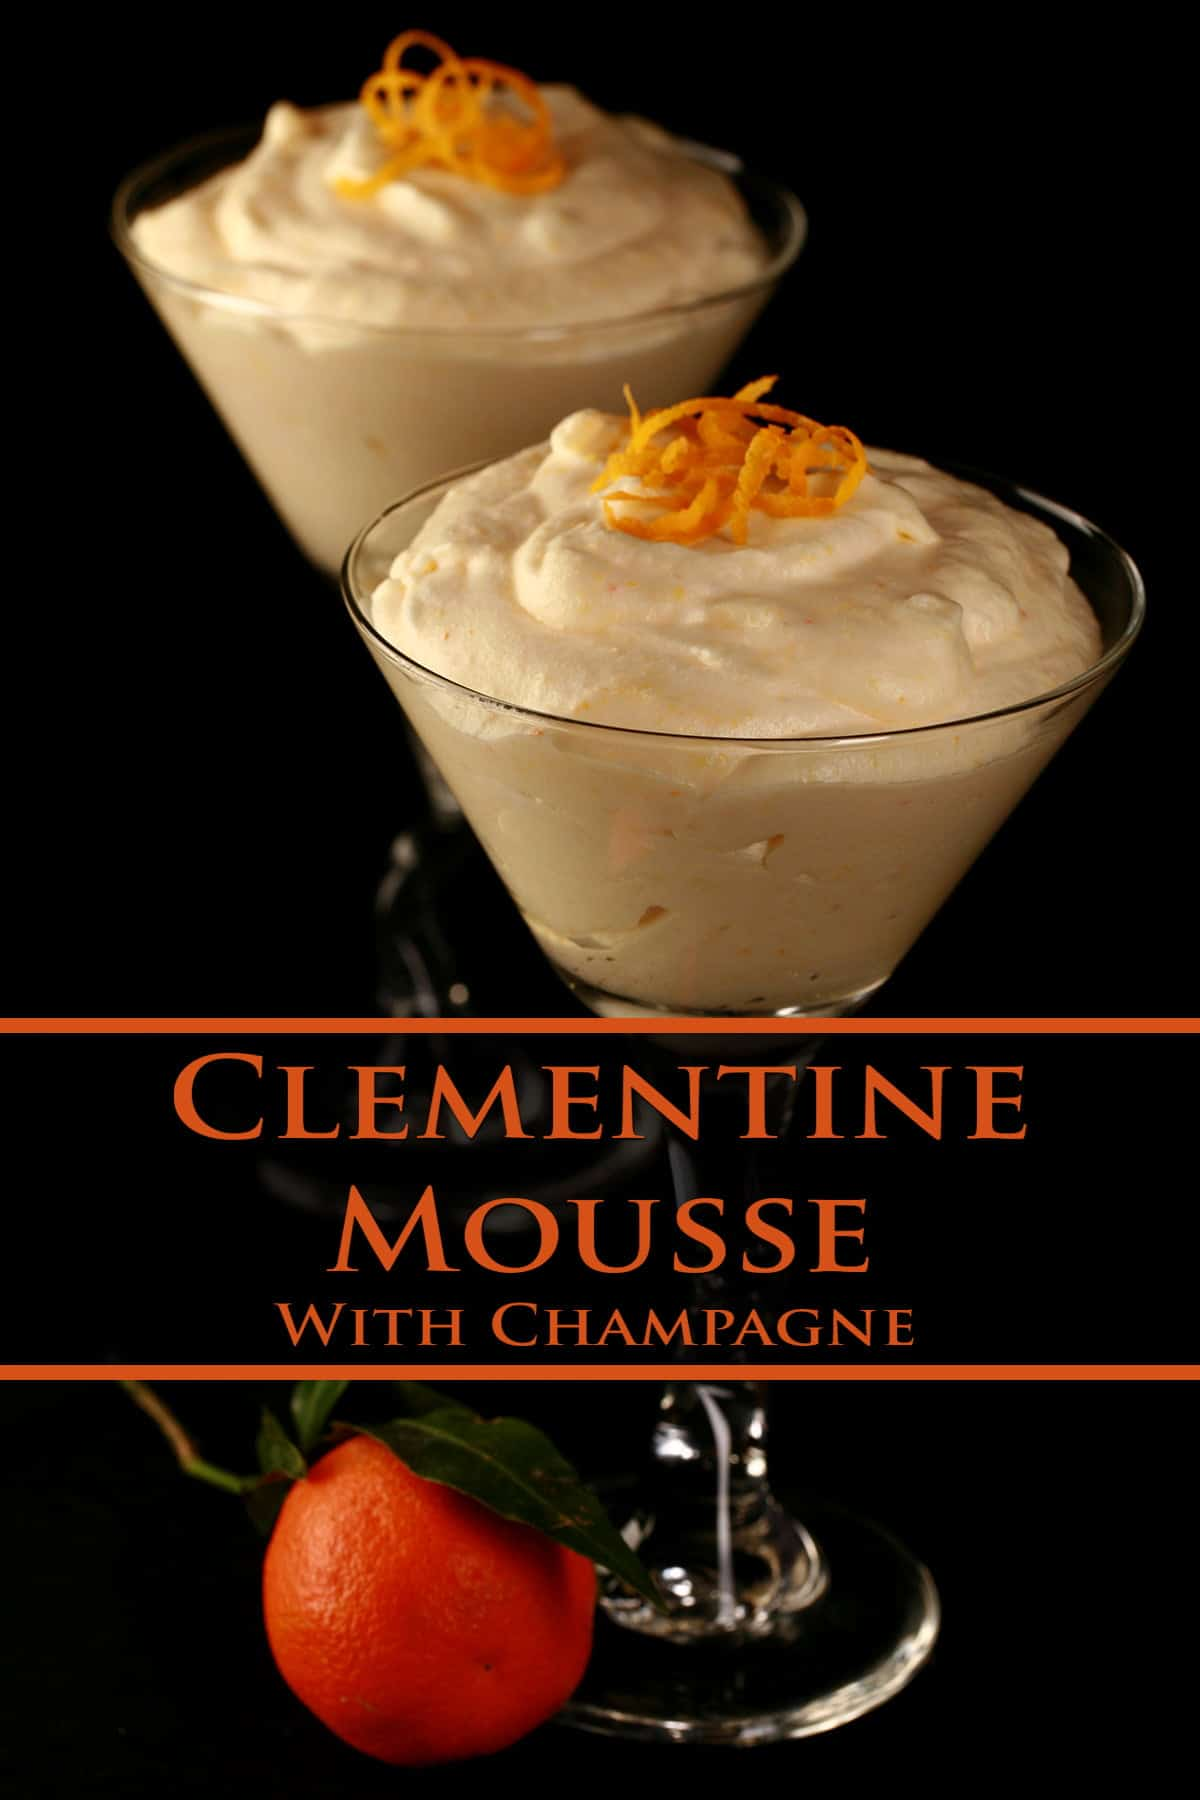 Two martini glasses, mounded with clementine-champagne mousse. There is a clementine orange near the base of one glass.